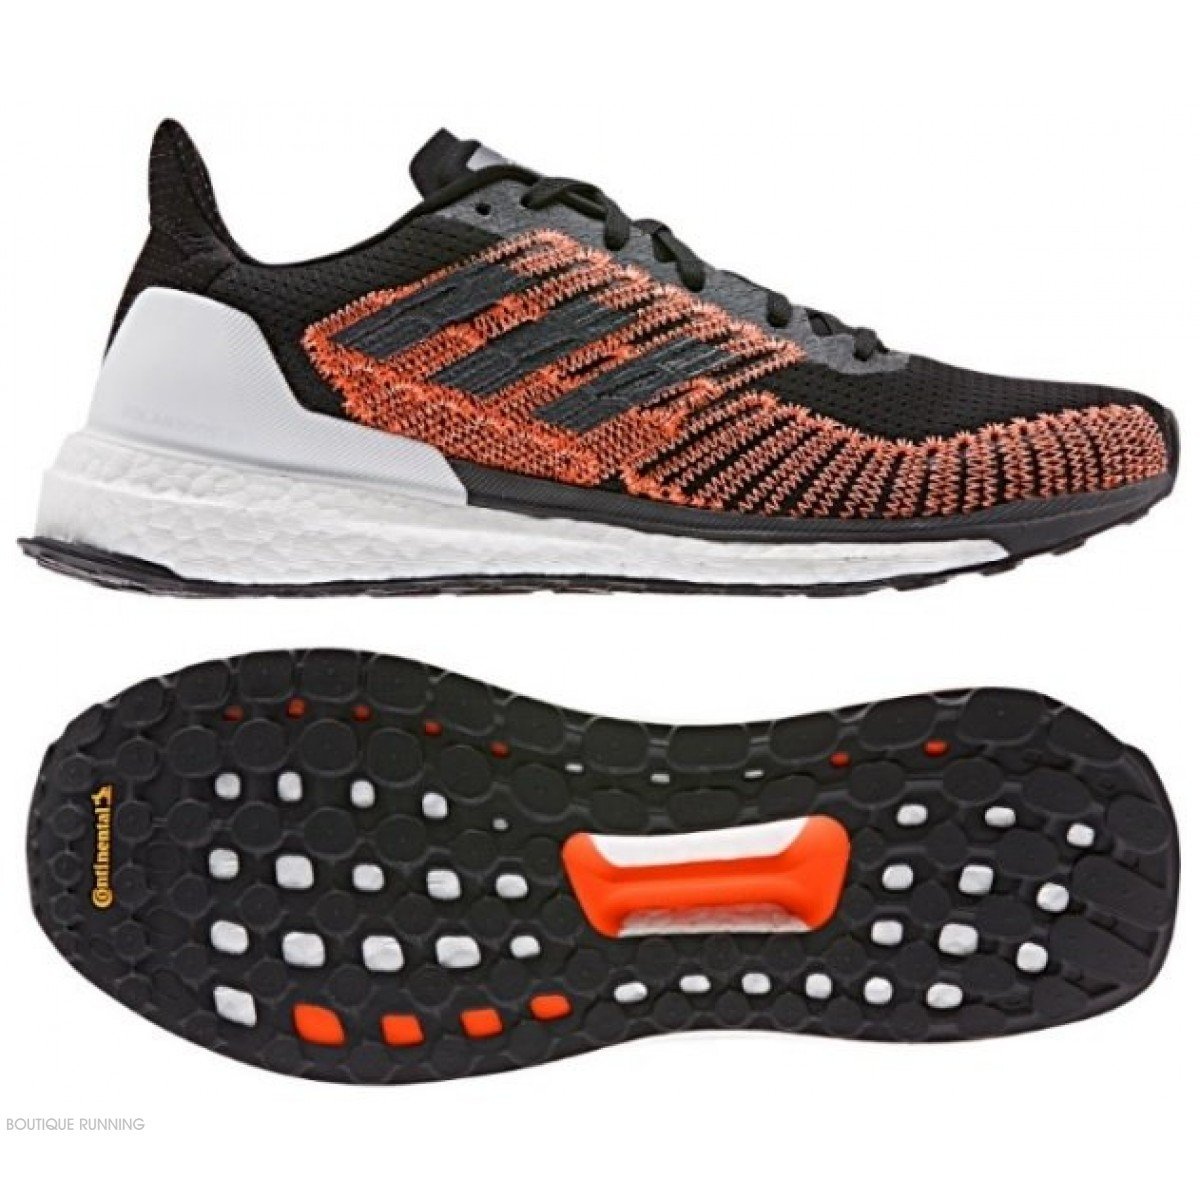 Solarboost St De Adidas Chaussures Hommes G28060 Running Pour xerdCWBo